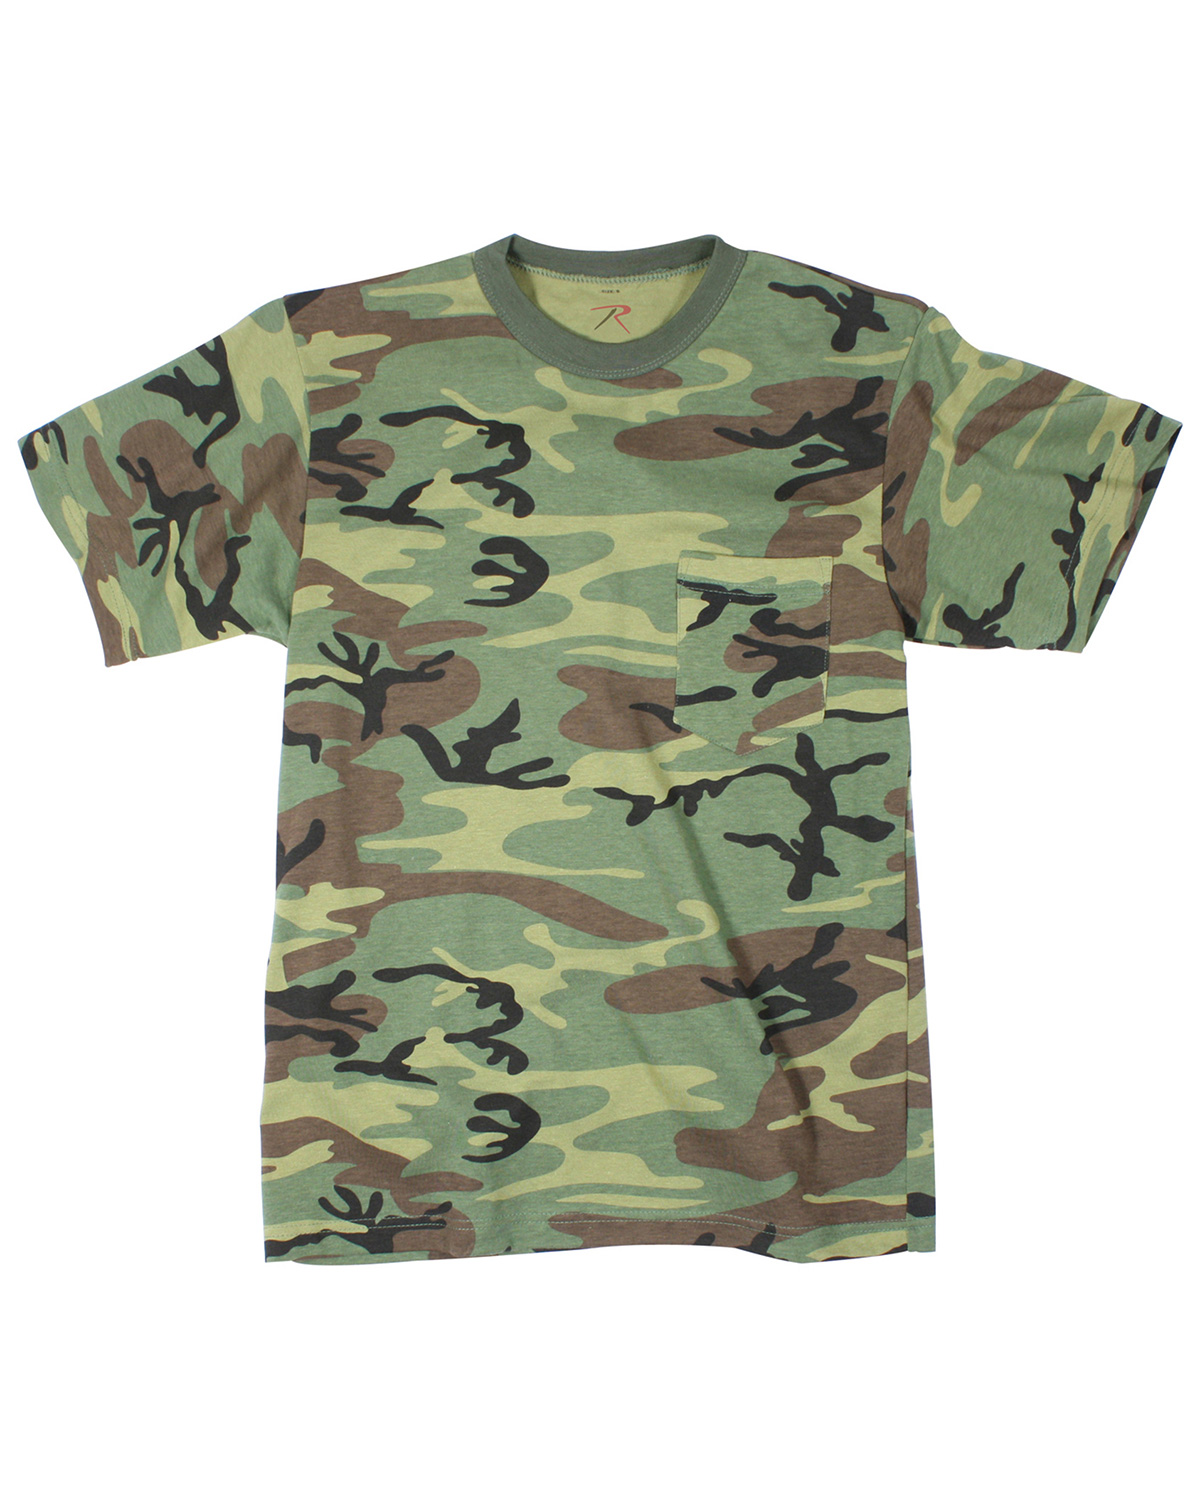 6667 - Woodland Camouflage Pocket T-Shirt